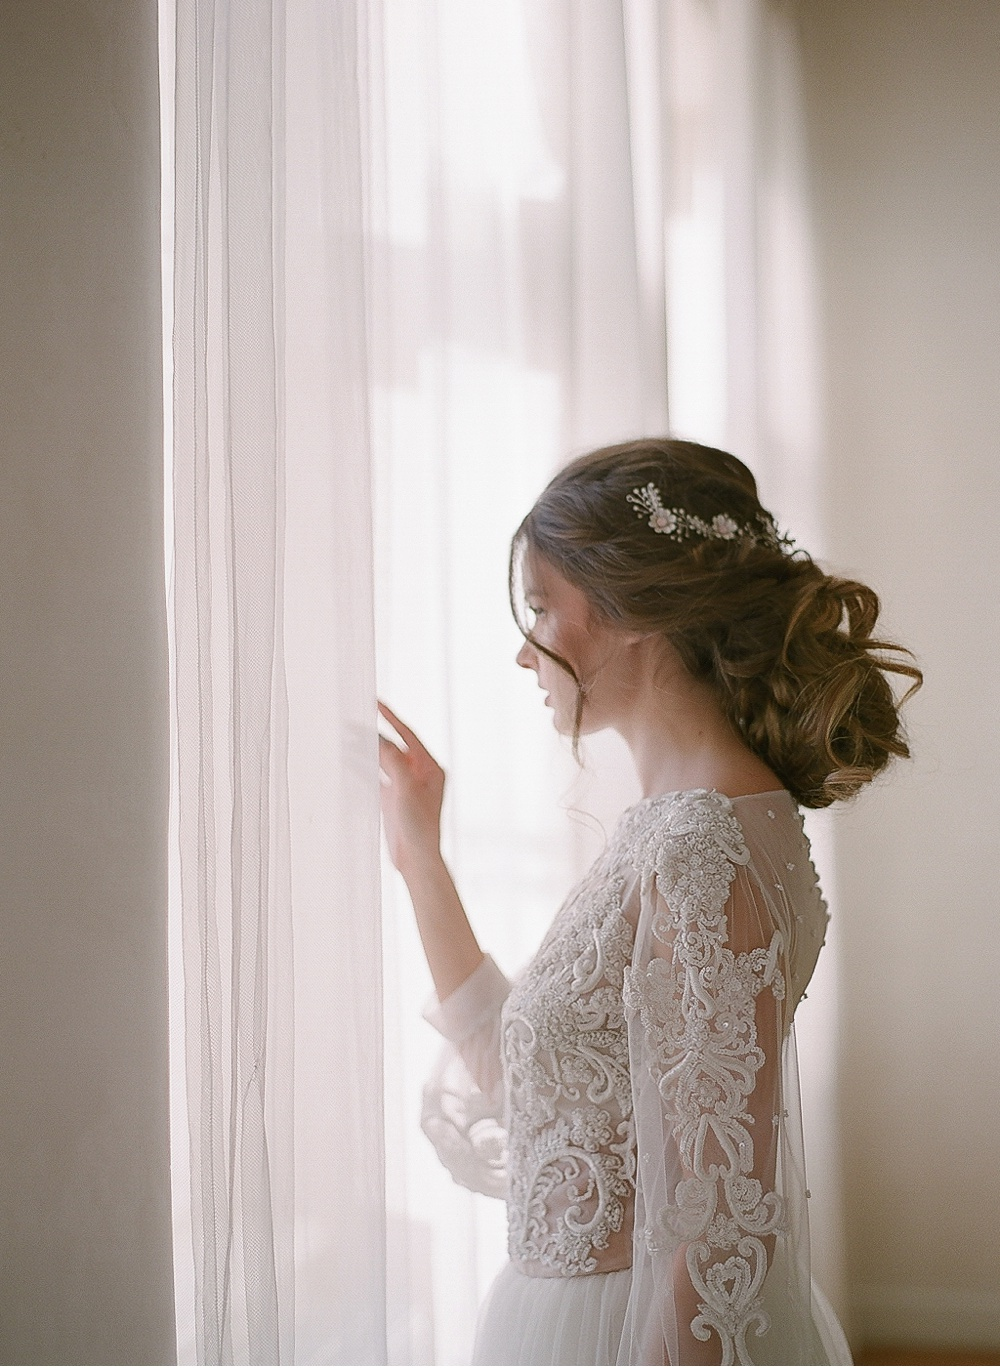 FineArt_Bridal_Shooting__0011.jpg